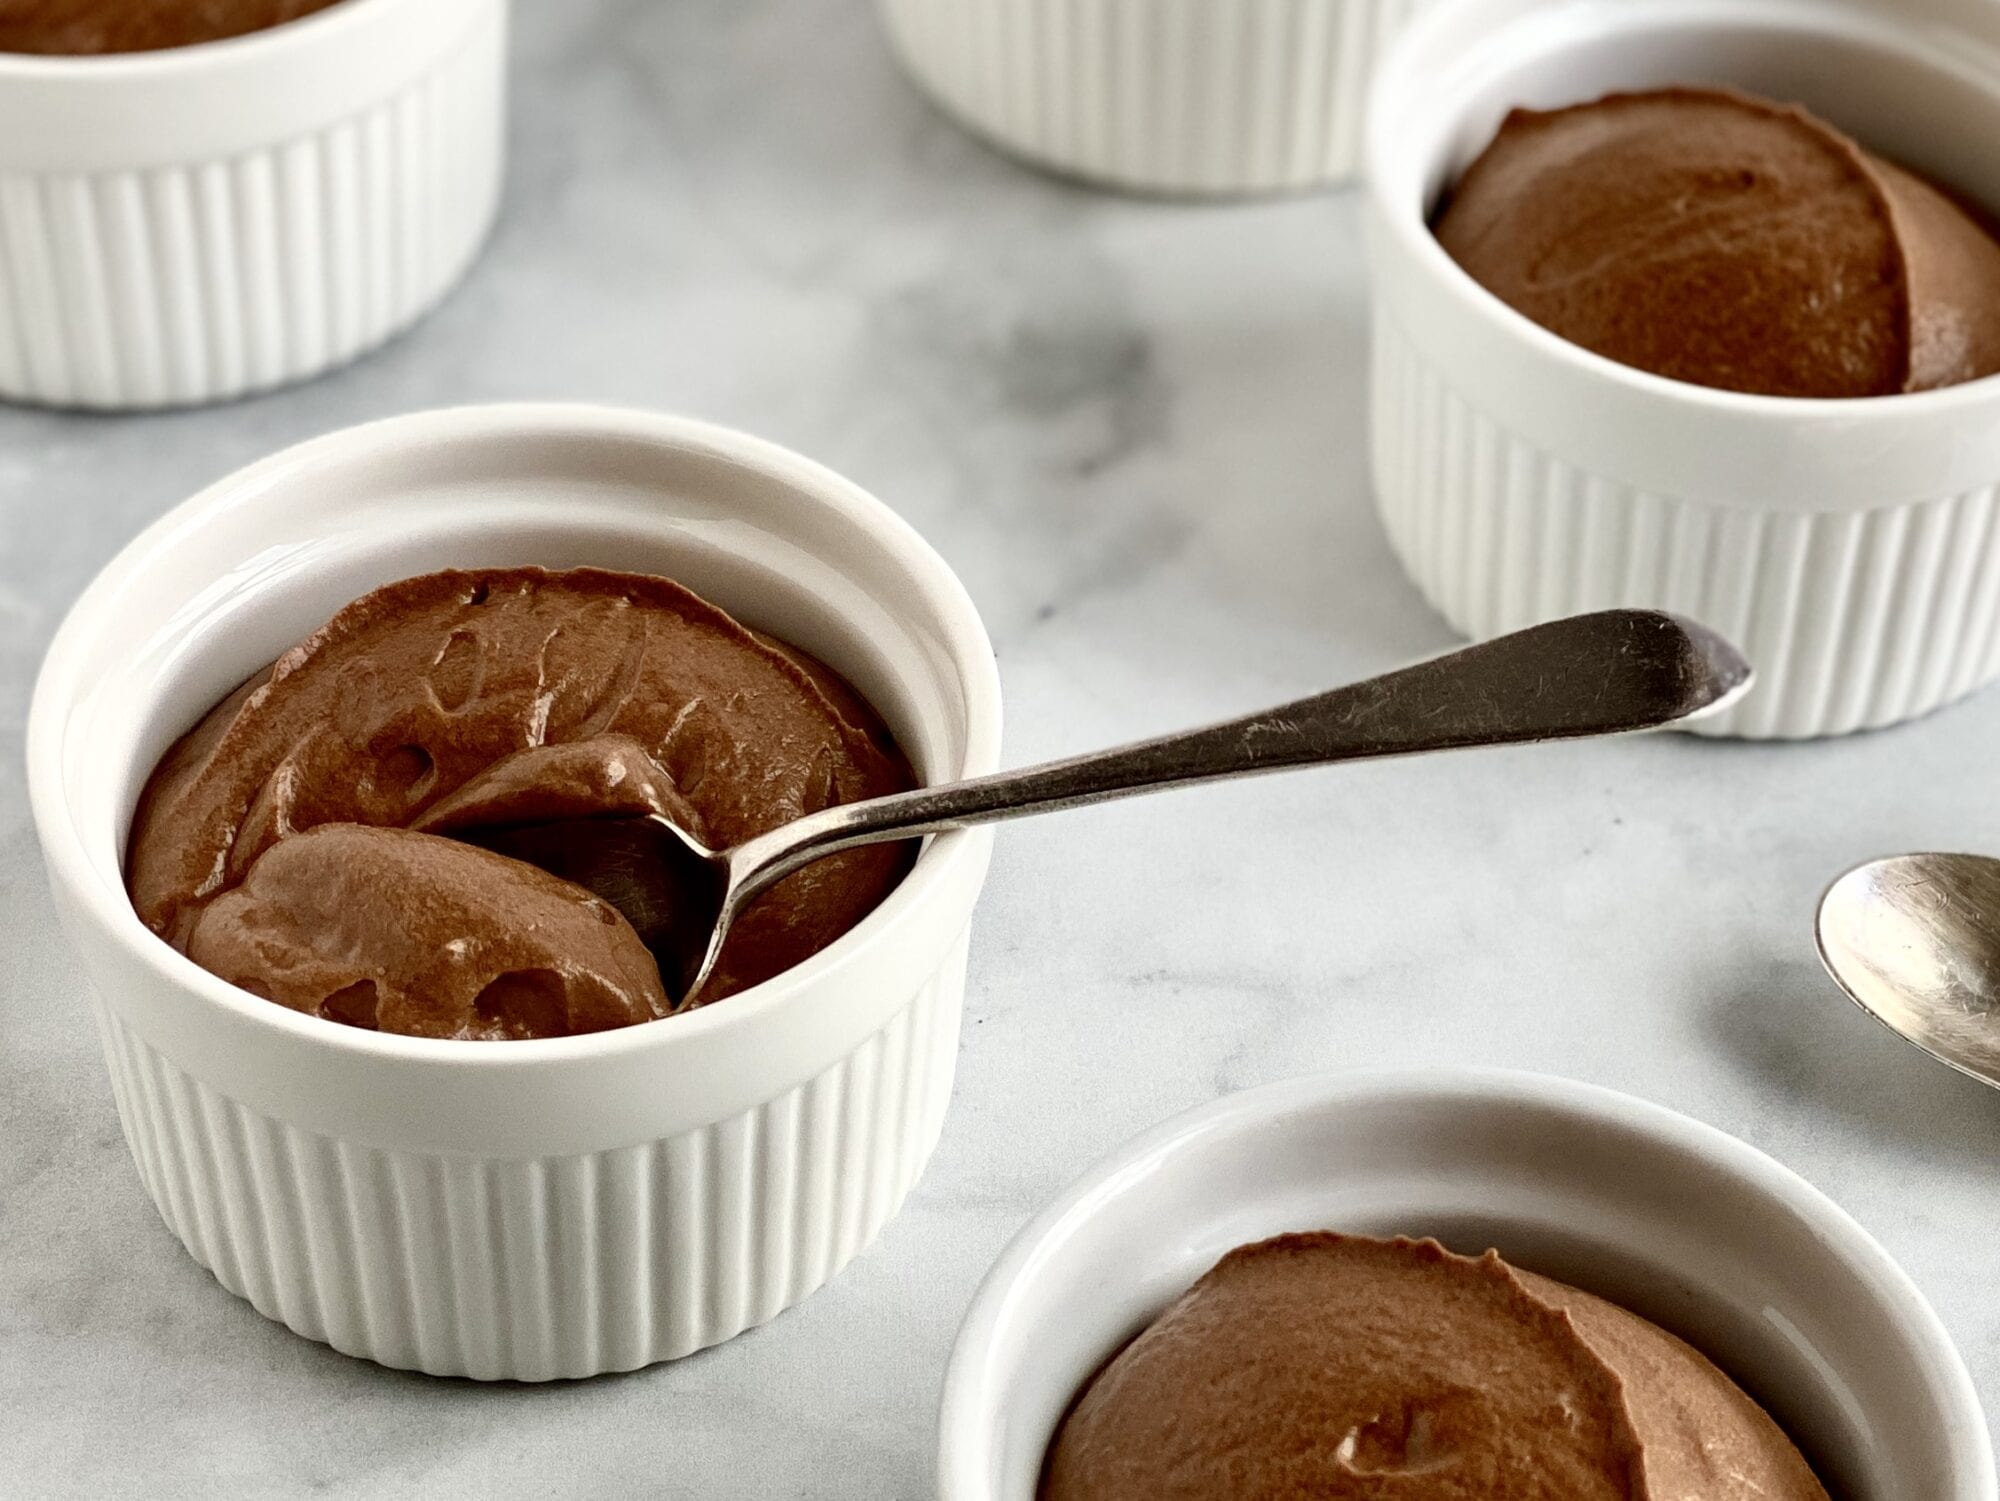 Easy Chocolate Mousse Recipe | Jessie Sheehan Bakes